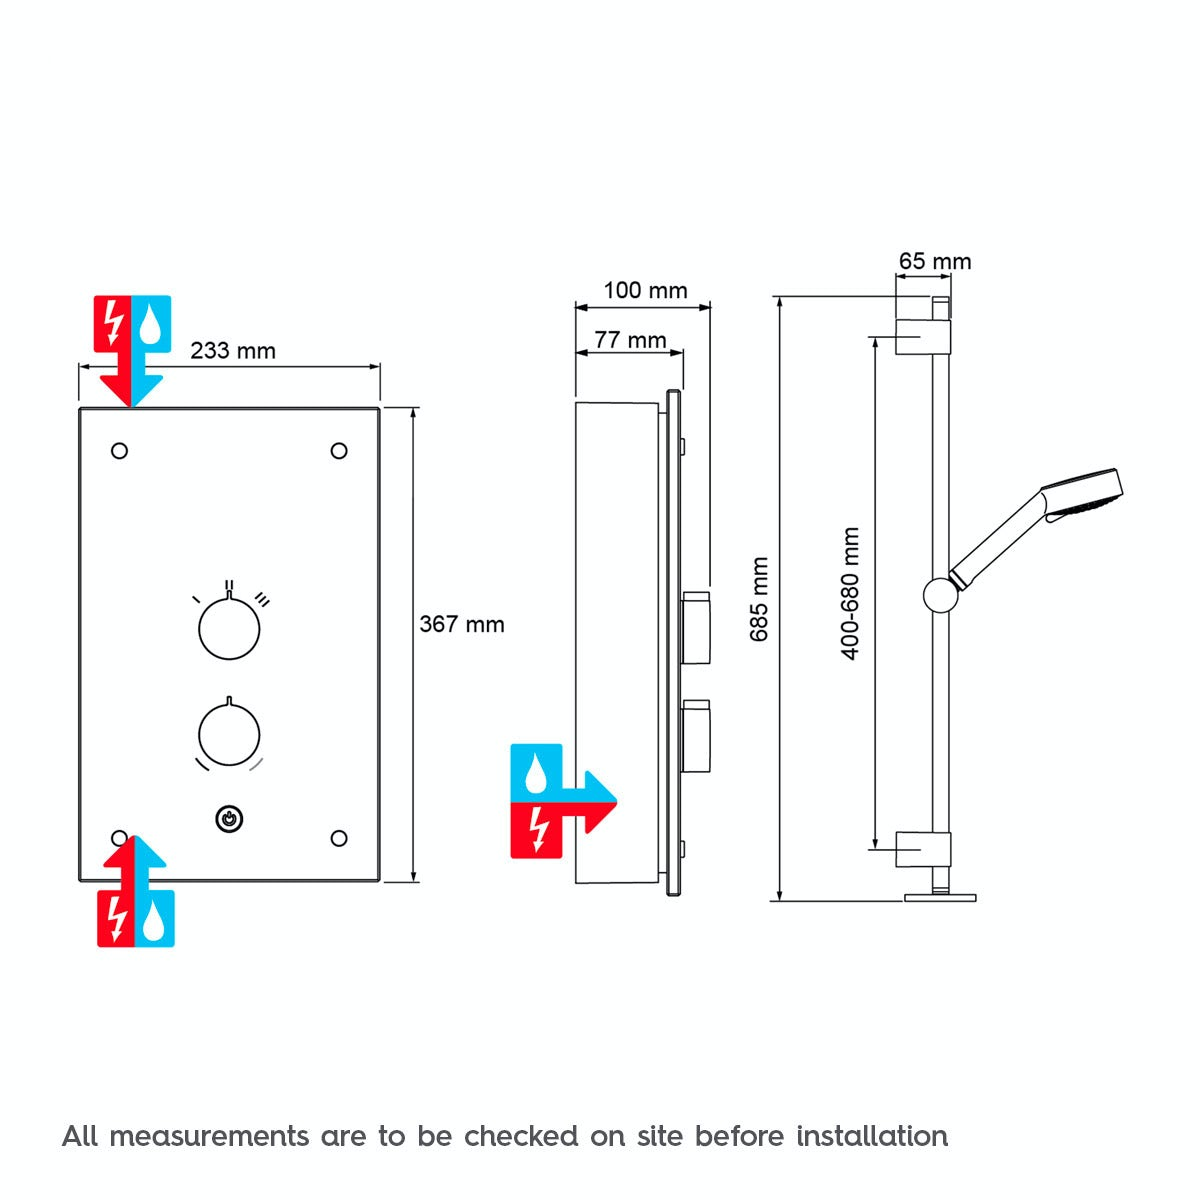 Dimensions for Mira Galena 9.8kw electric shower light stone